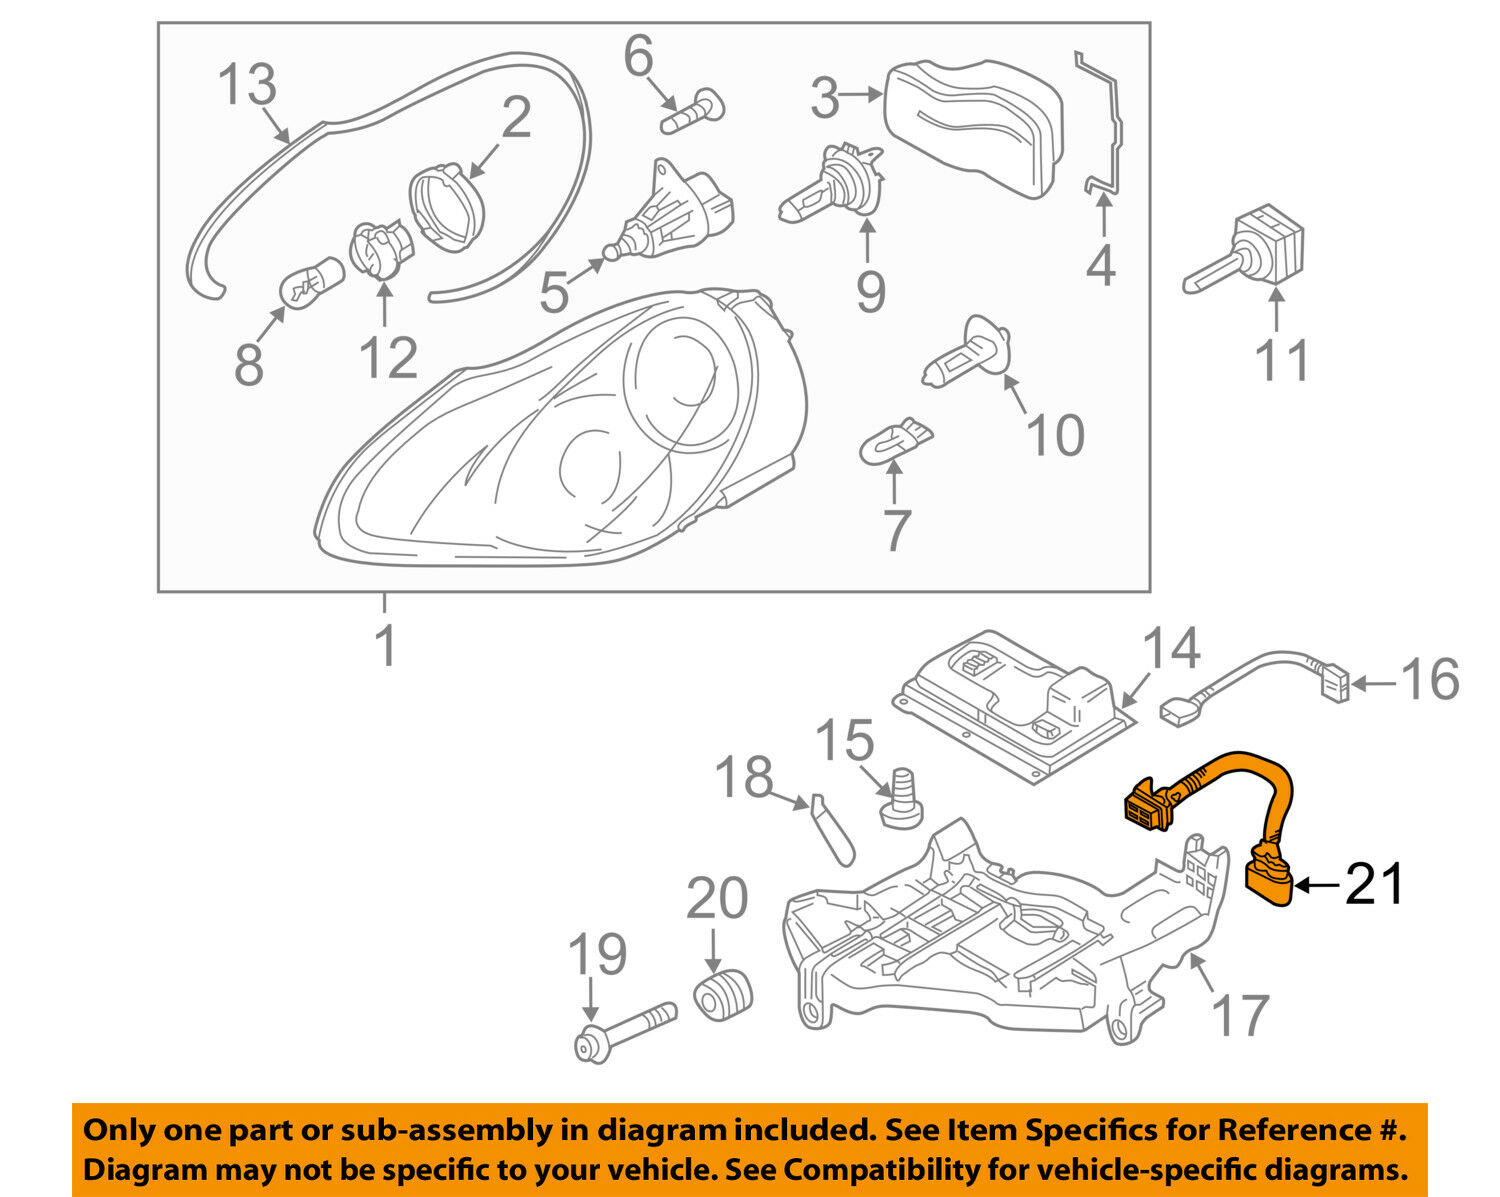 Porsche Oem 03 06 Cayenne Headlight Head Light Lamp Harness Engine Diagram 1 Of 2only Available